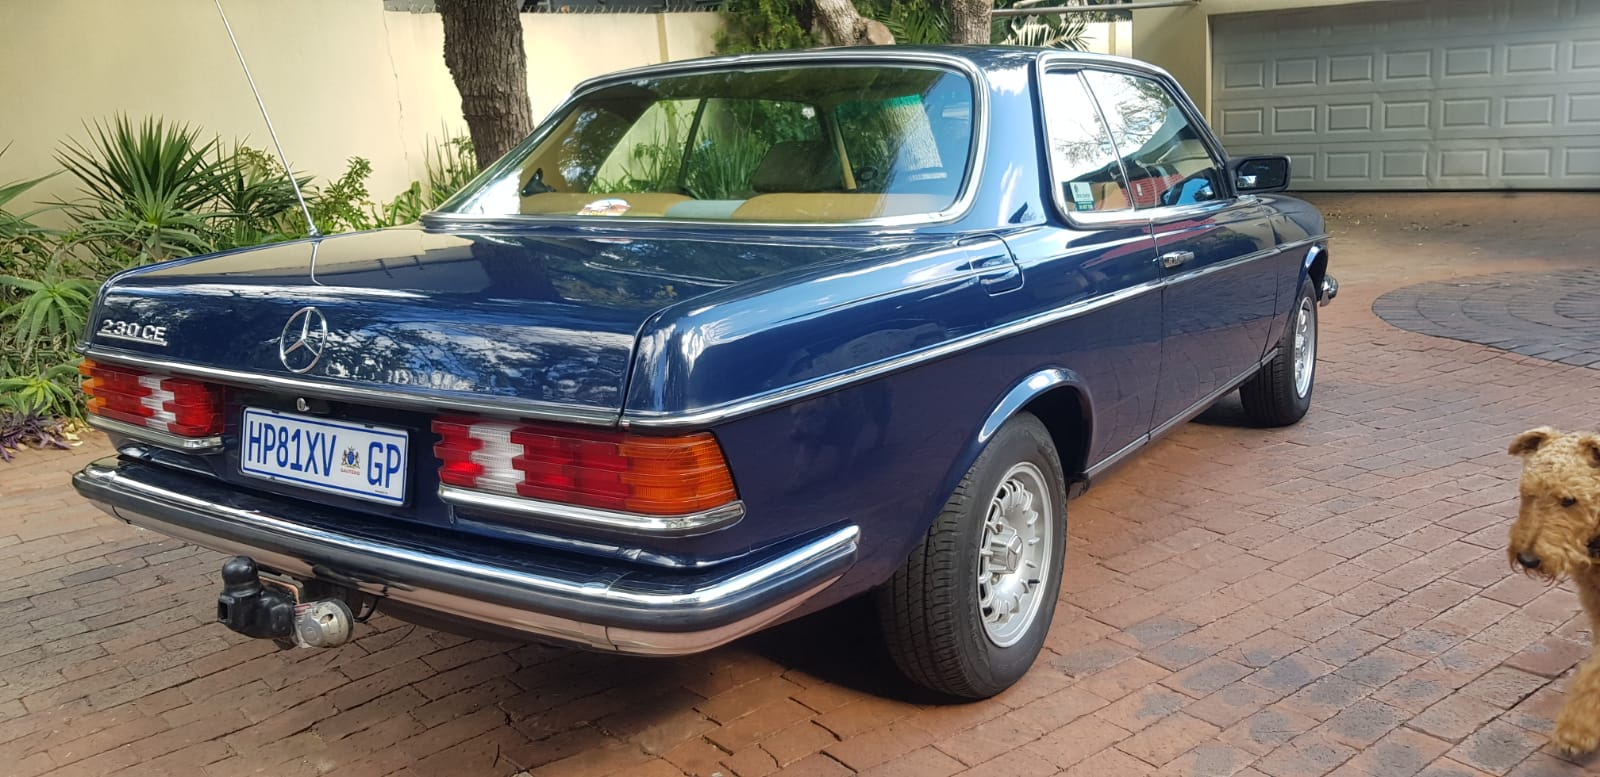 MERCEDES 230 CE 5 SPEED MANUAL